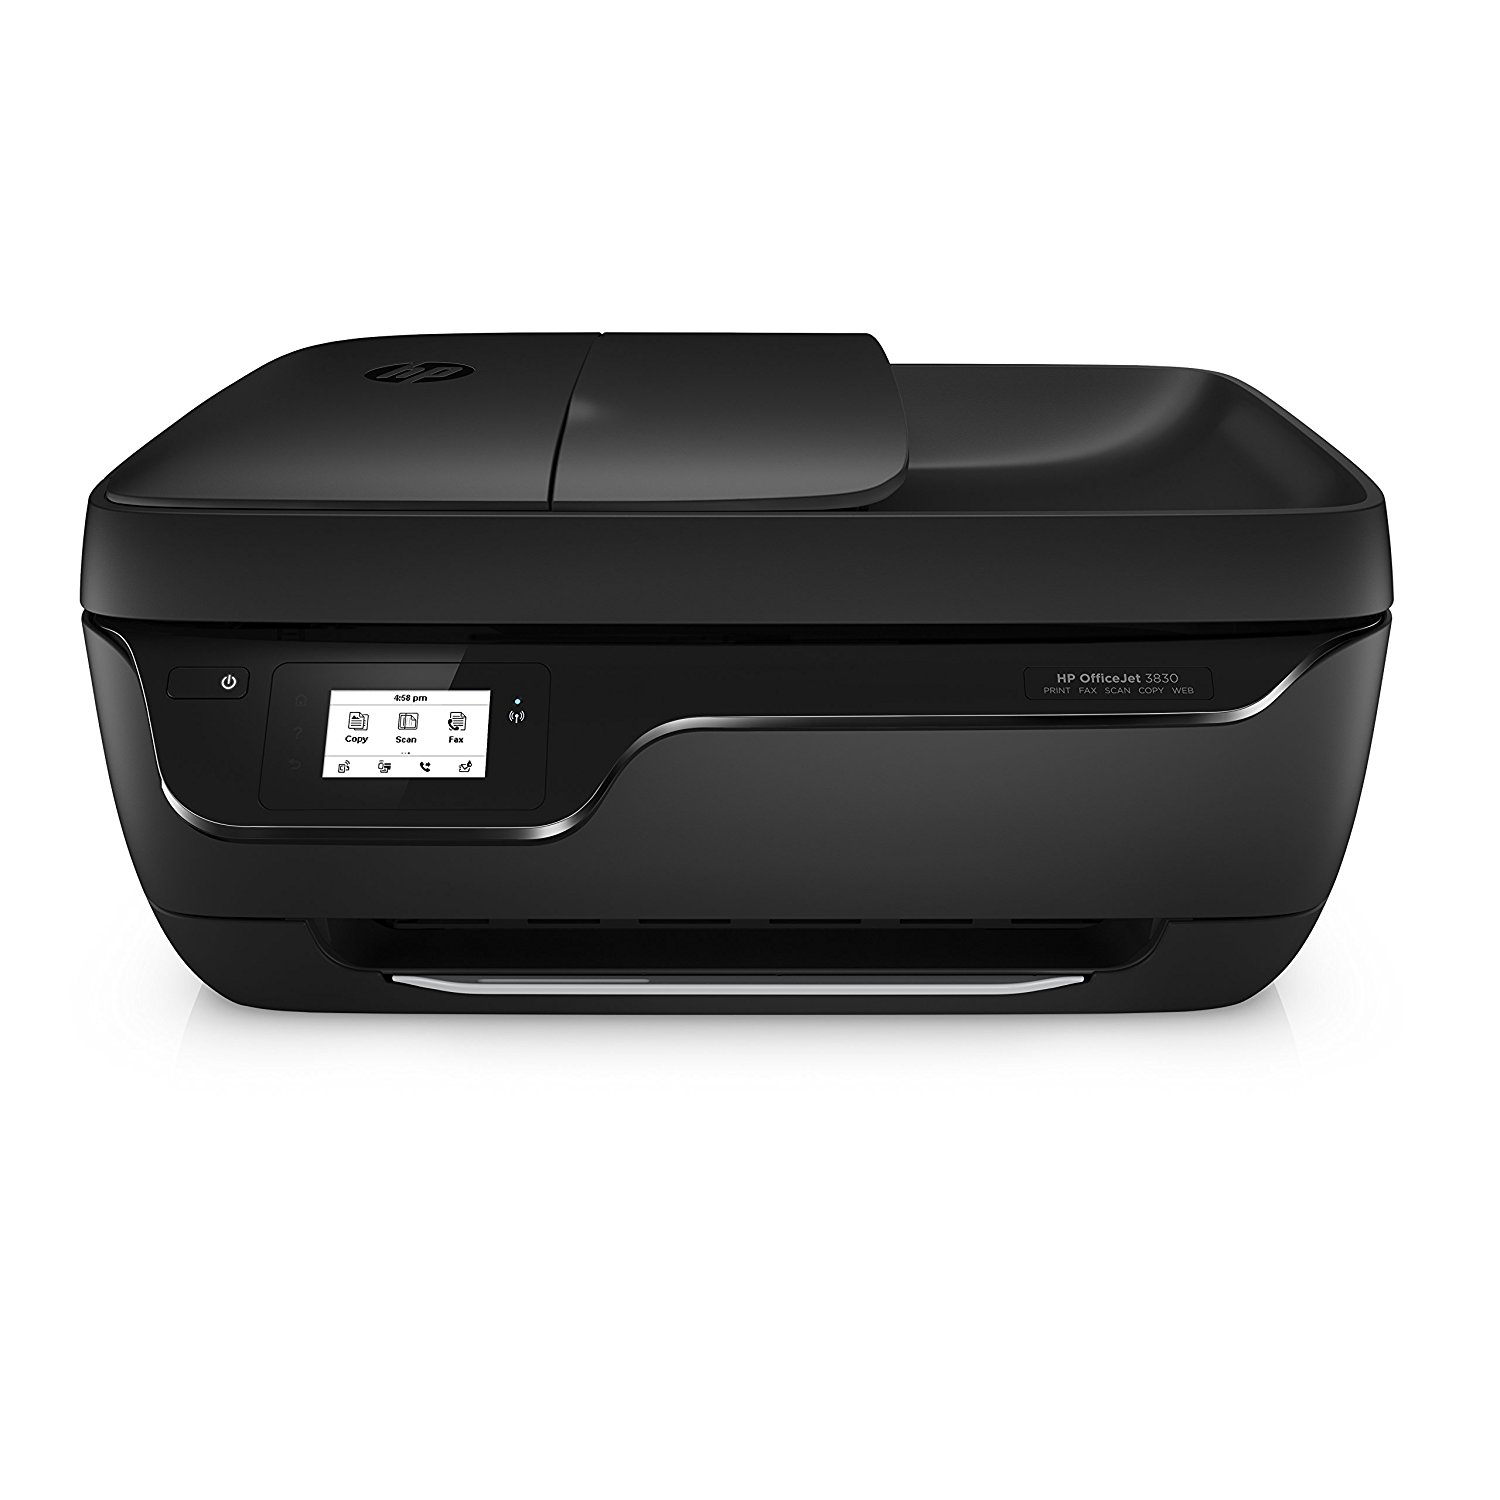 9. HP OfficeJet 3830 Wireless Printer